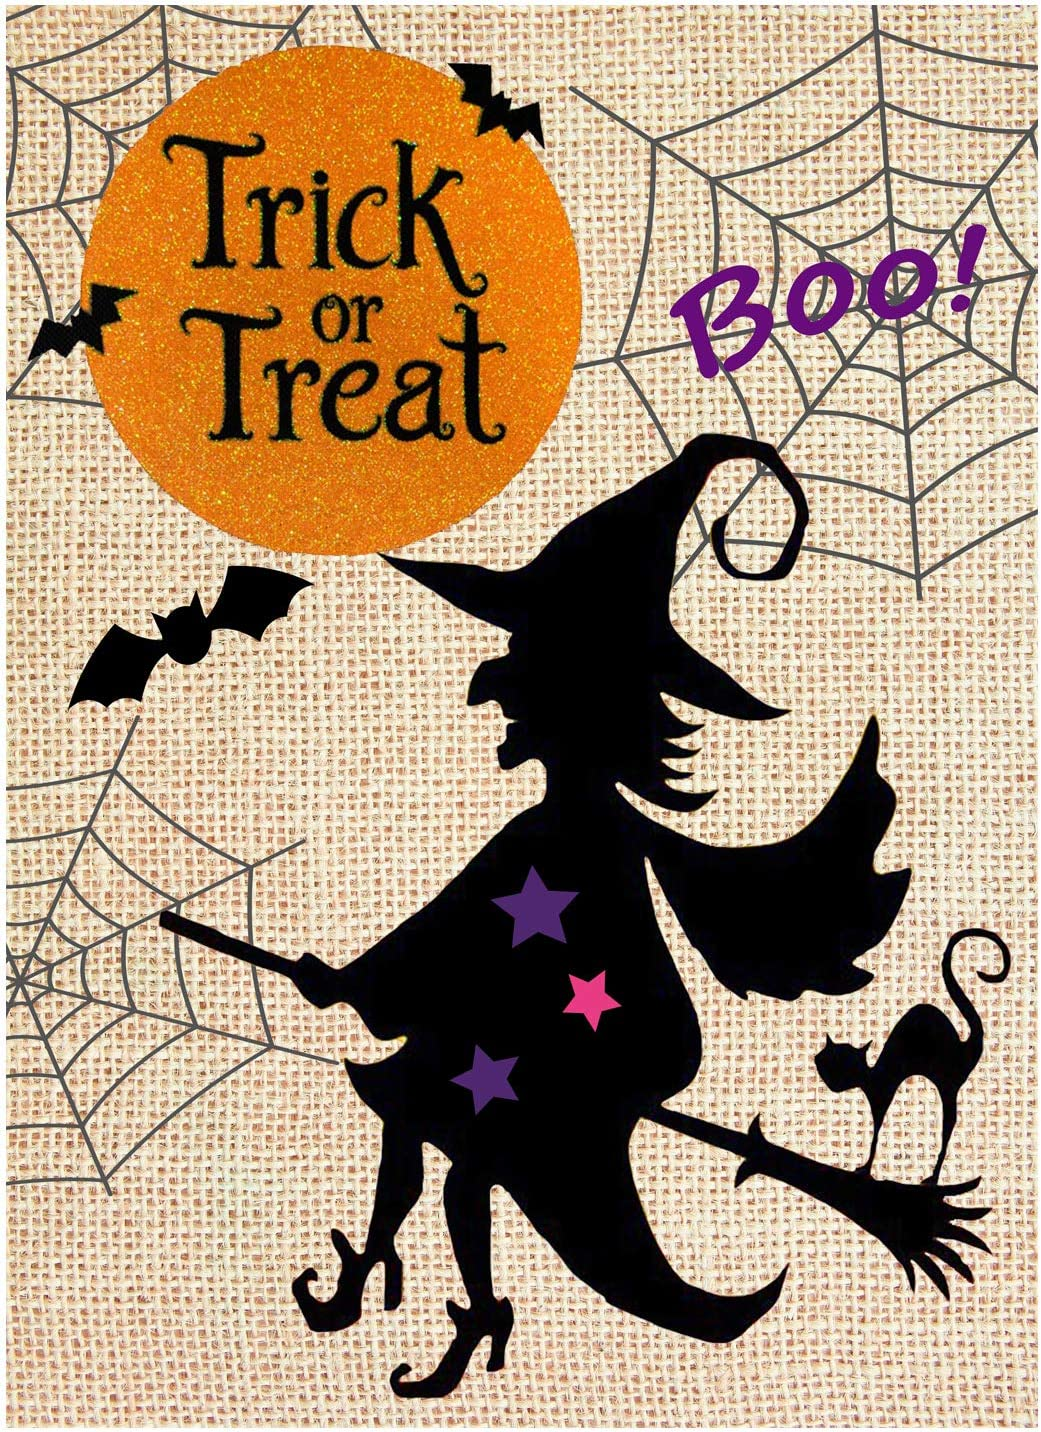 "Wamika Happy Halloween Pumpkin Witch Bats Trick or Treat Double Sided Burlap Garden Yard Flag 12"" x 18"",Scary Halloween Moon Ghost Boo Burlap Decorative Garden Flags Banner for Outdoor Home Party"